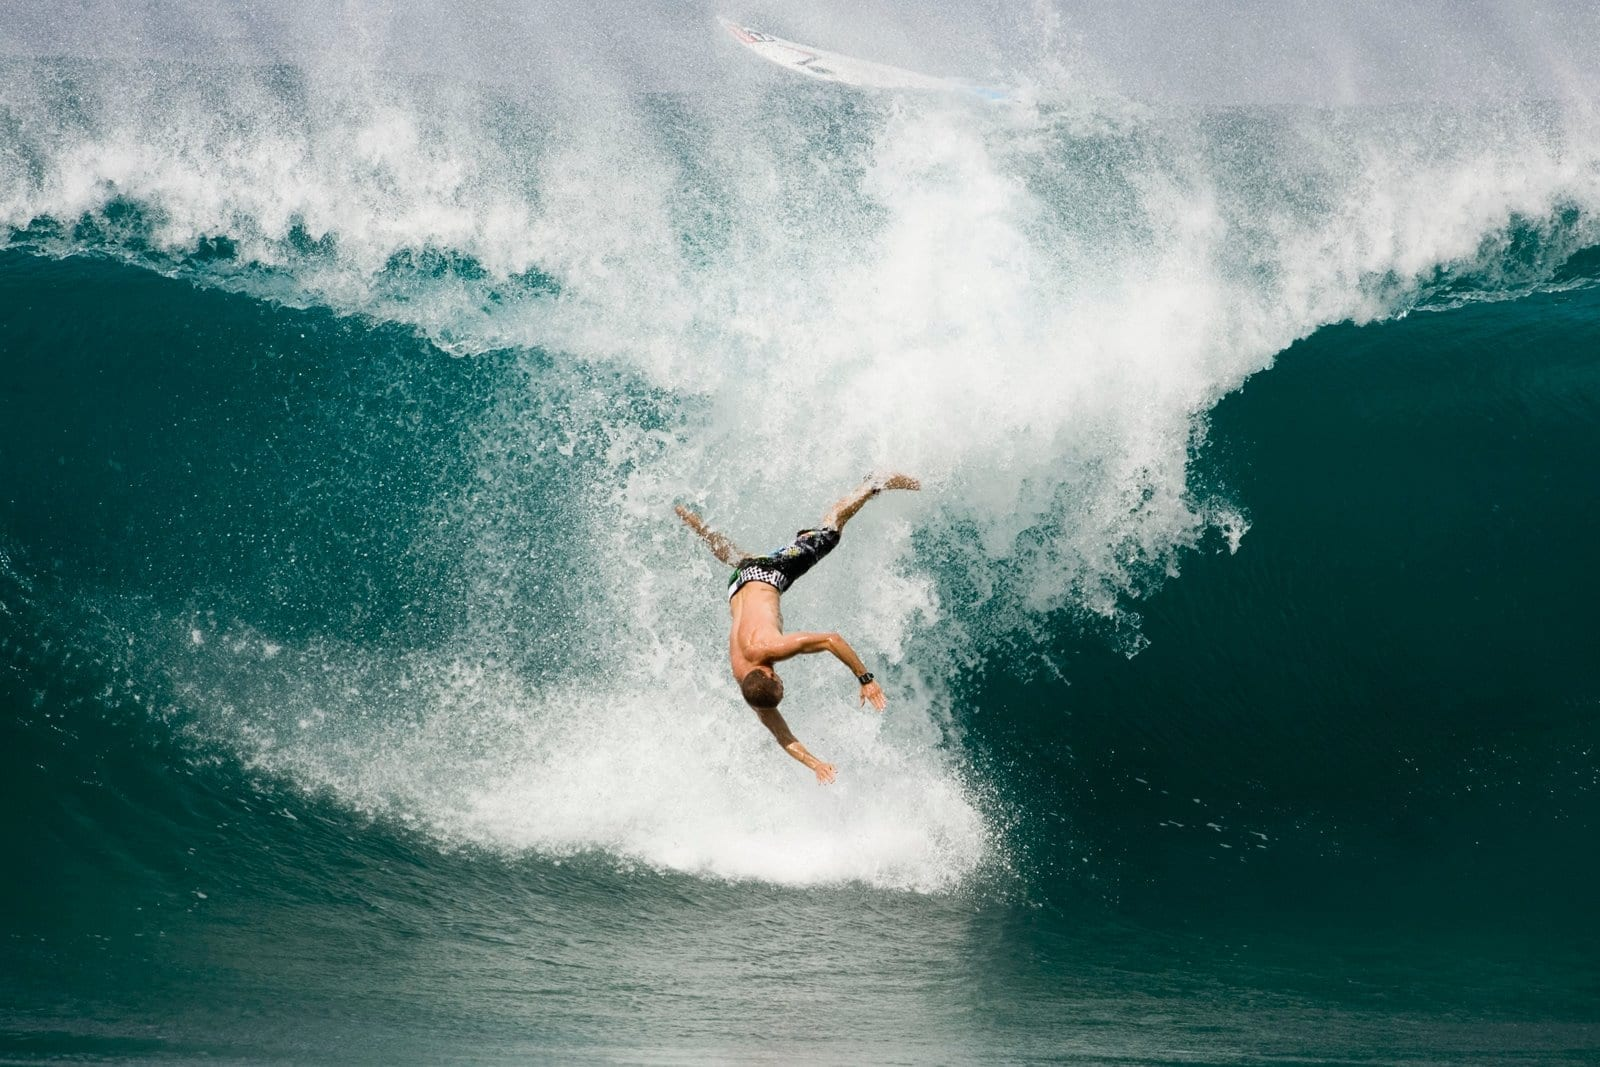 Stoke's Favorite #kookslams (And How To Avoid Them)